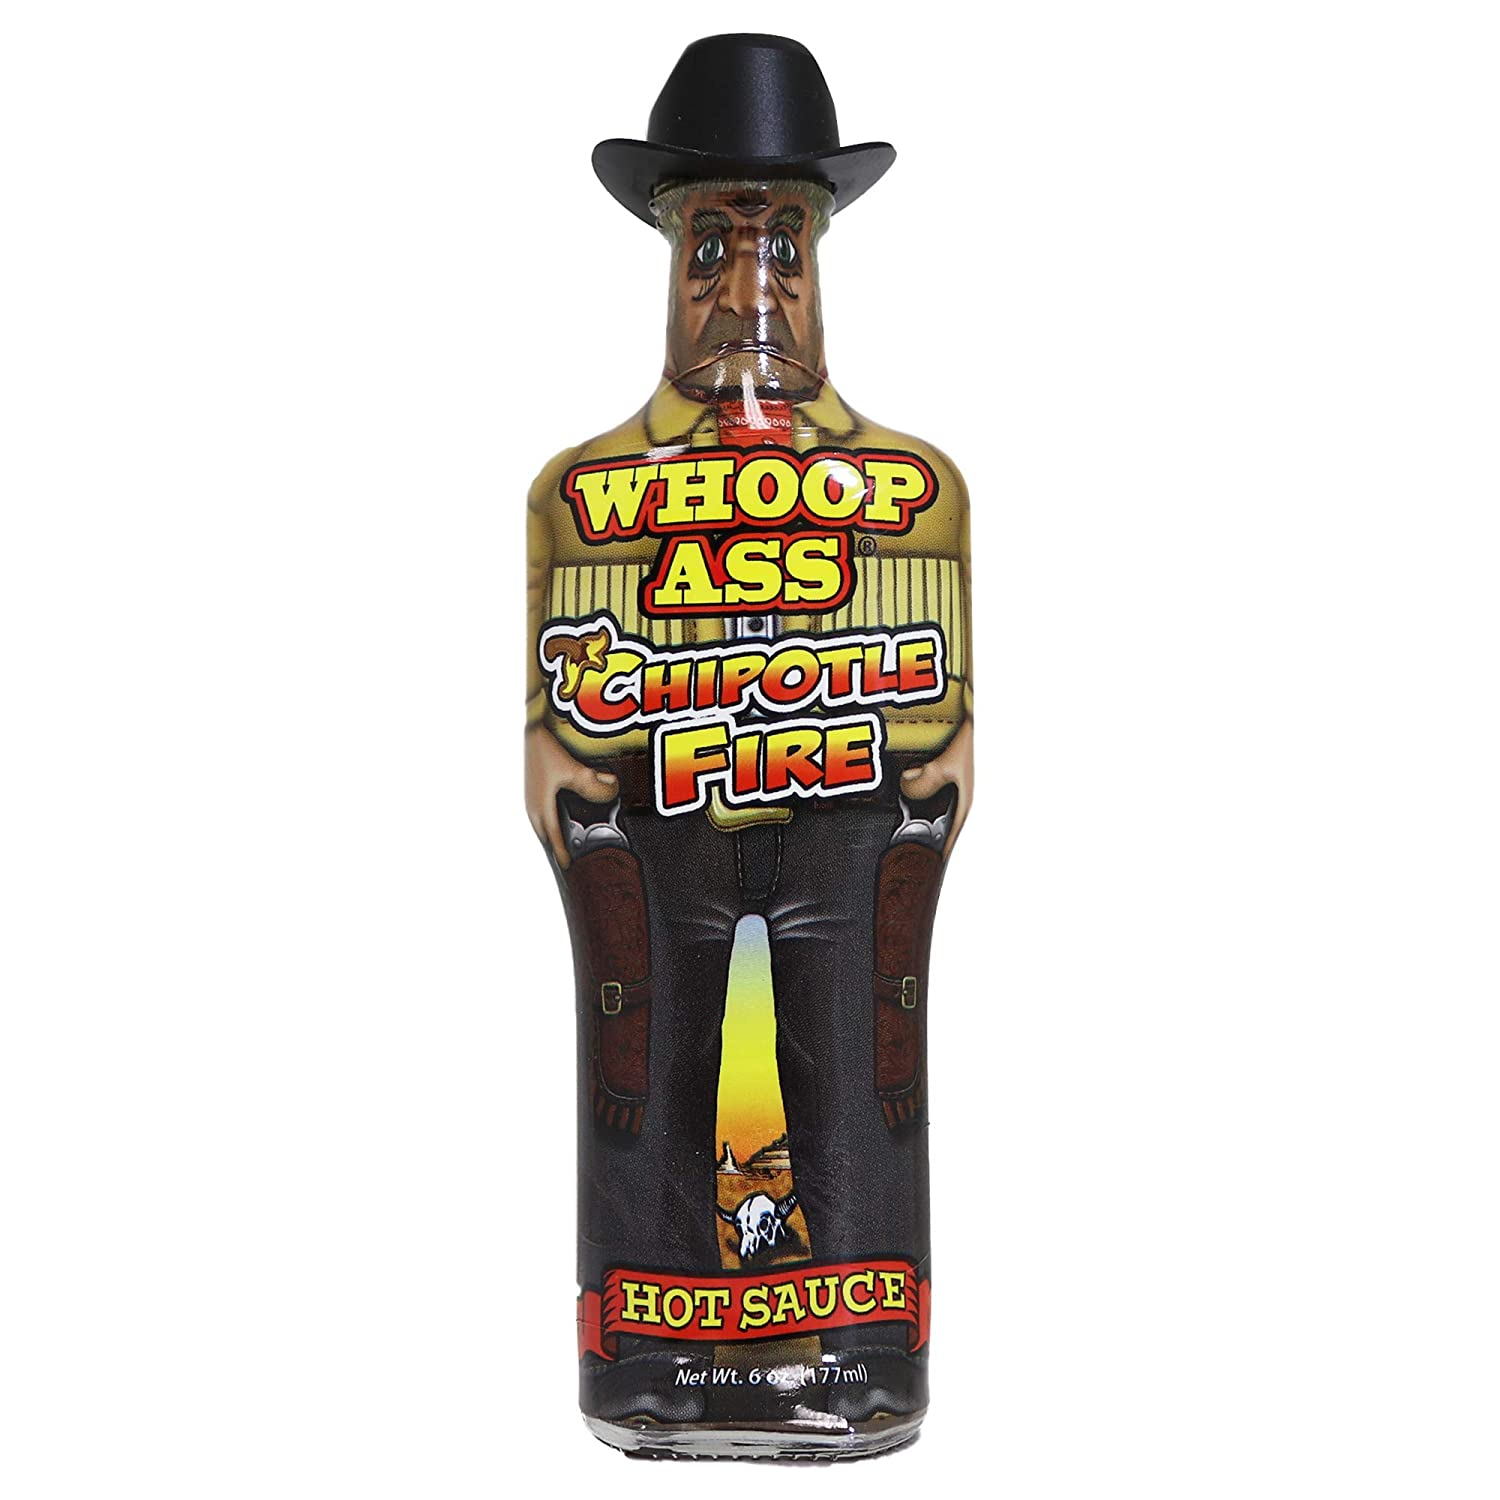 WHOOP ASS Premium Chipotle Fire Hot Sauce - 5 oz – Try if you dare! – Perfect Gourmet Gift for the Hot Sauce Fan